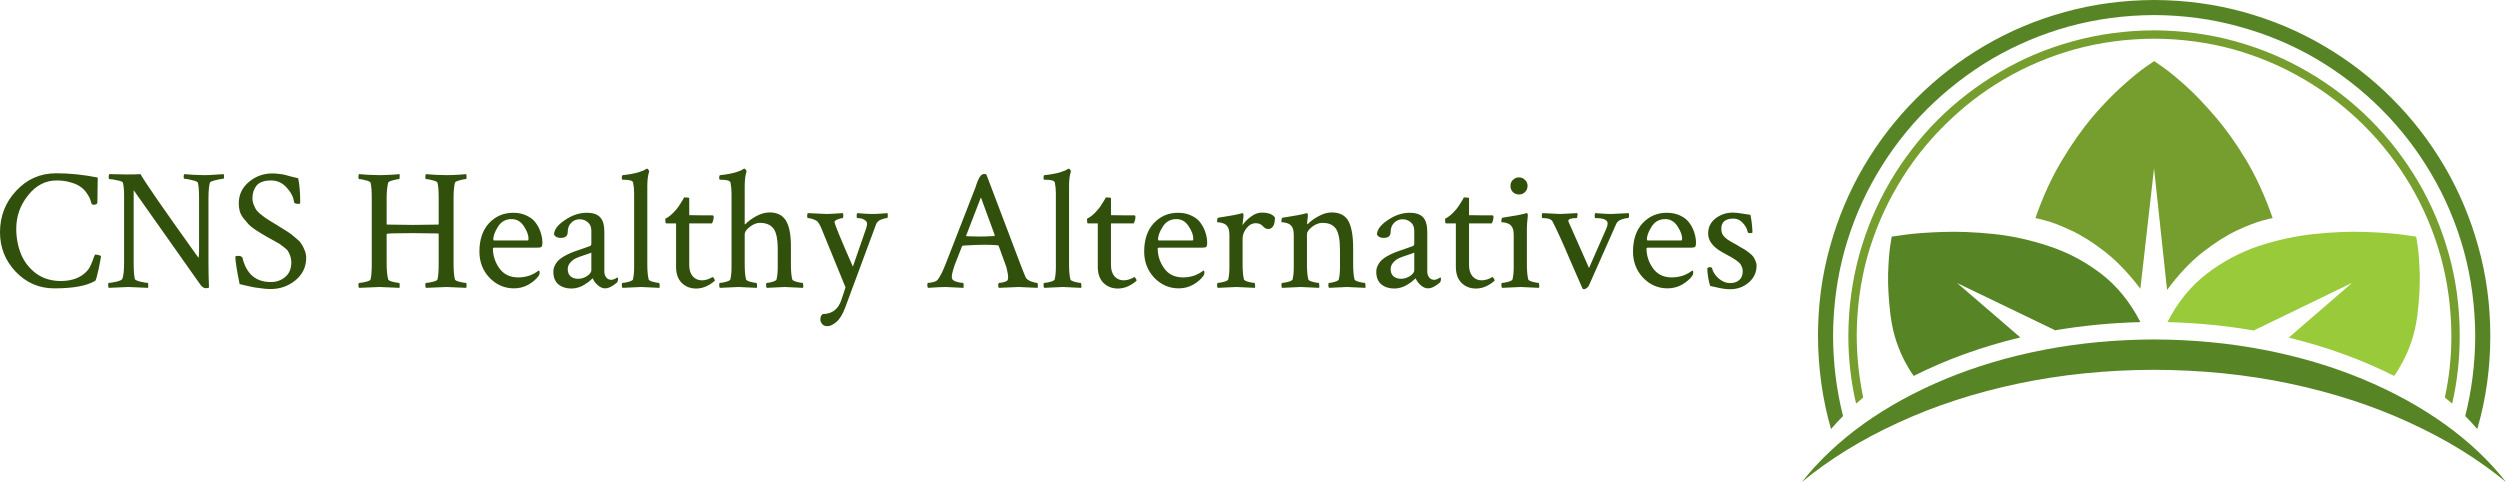 cnshealthyalternatives.com